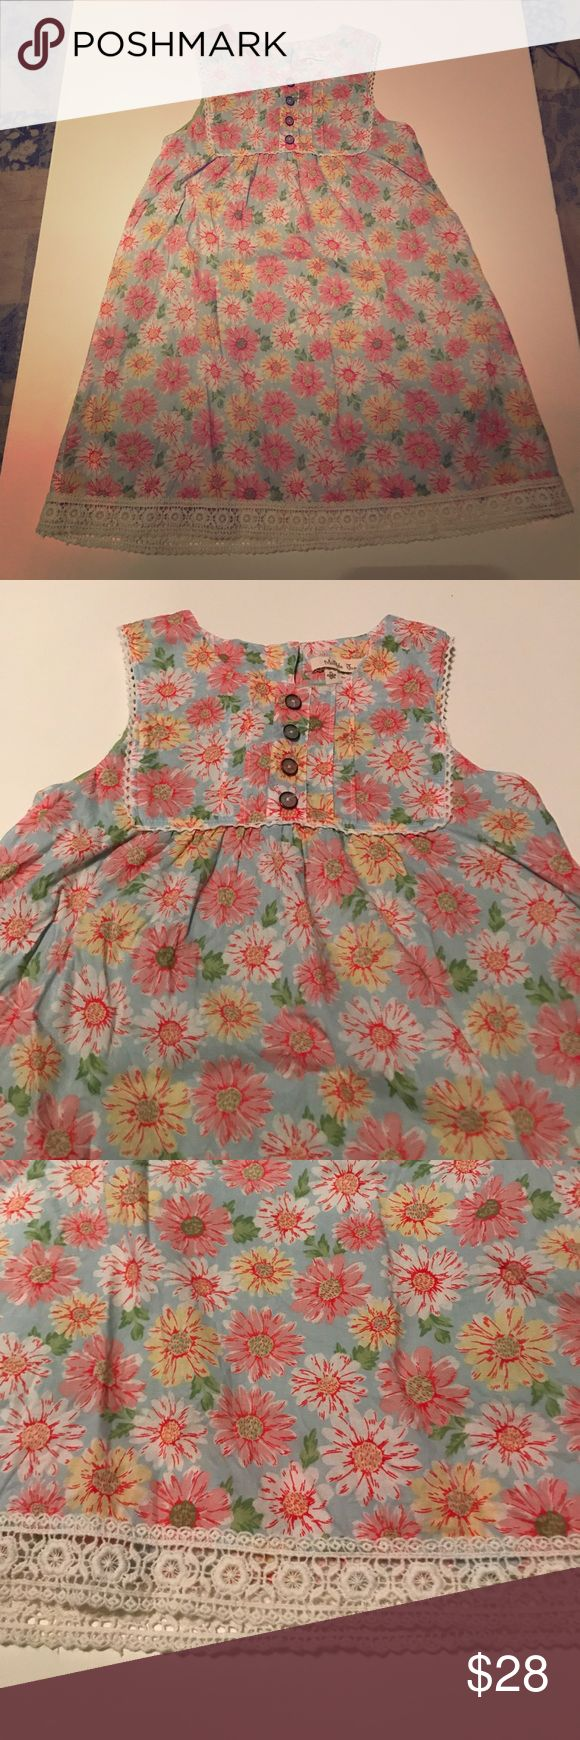 Matilda Jane floral tank dress size 6 euc Gorgeous timeless light blue floral Matilda Jane dress with vintage details like lace make this dress perfect for any occasion. Bought new for my daughter who only wore this three times before she outgrew it now it is time to pass this on! Dress has never been put into the dryer only hung to dry! In excellent used condition with no issues! Matilda Jane Dresses